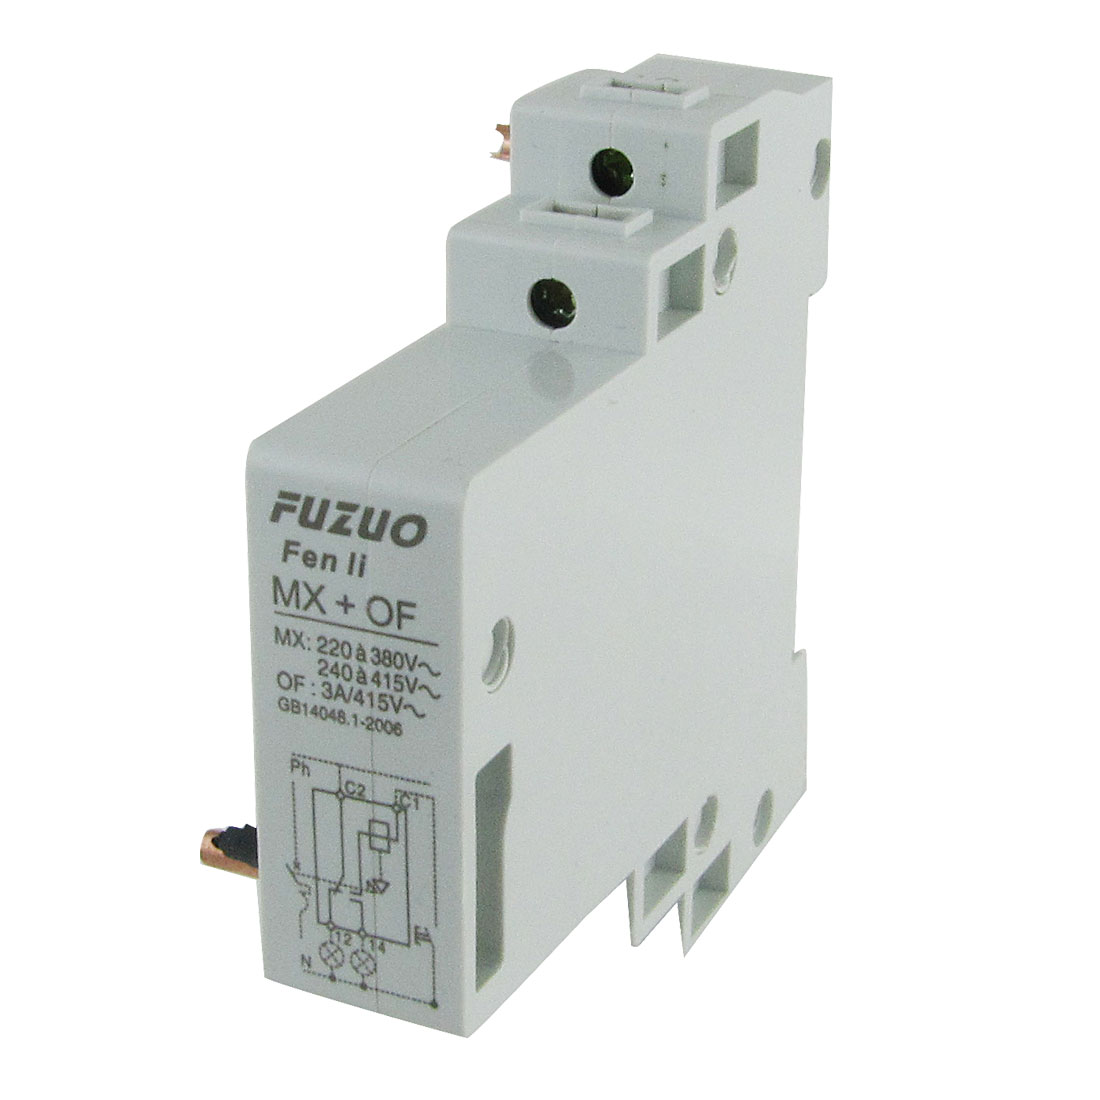 Unique Bargains Dz47 Mcb Circuit Breaker Mx Of House China High Quality Auxiliary Contact Shunt Release New